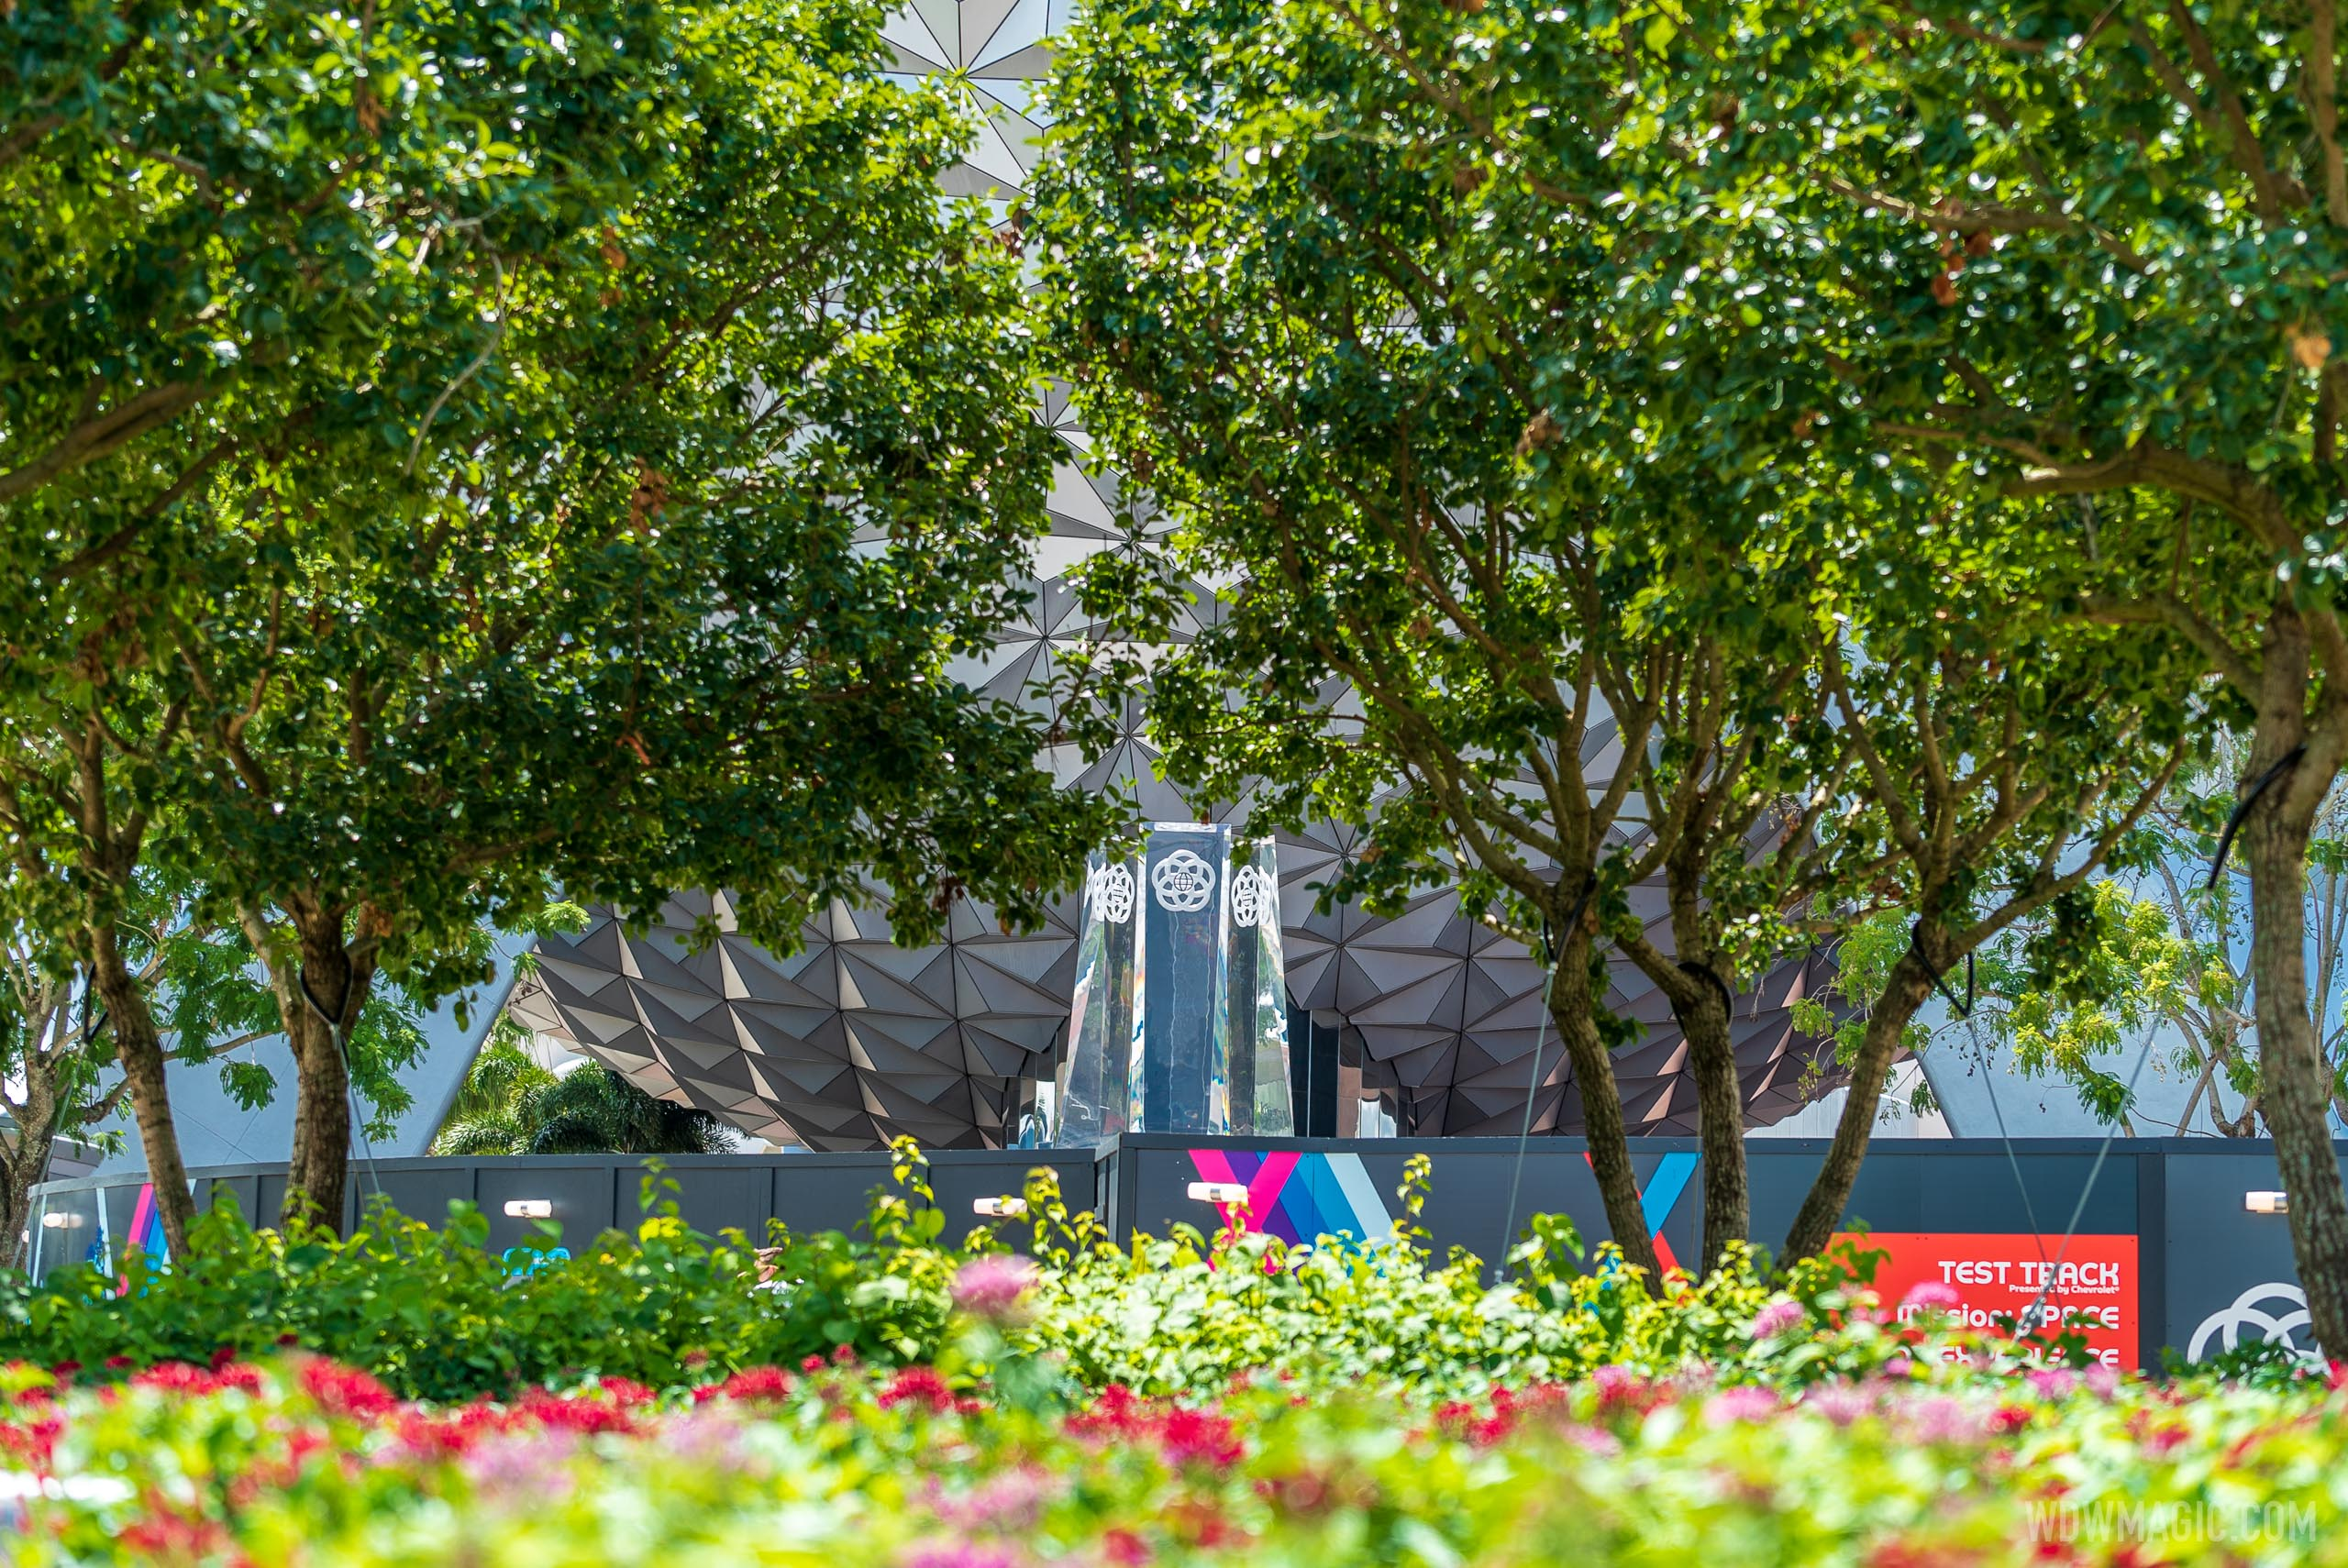 Both Future World and World Showcase will open at midday in late November